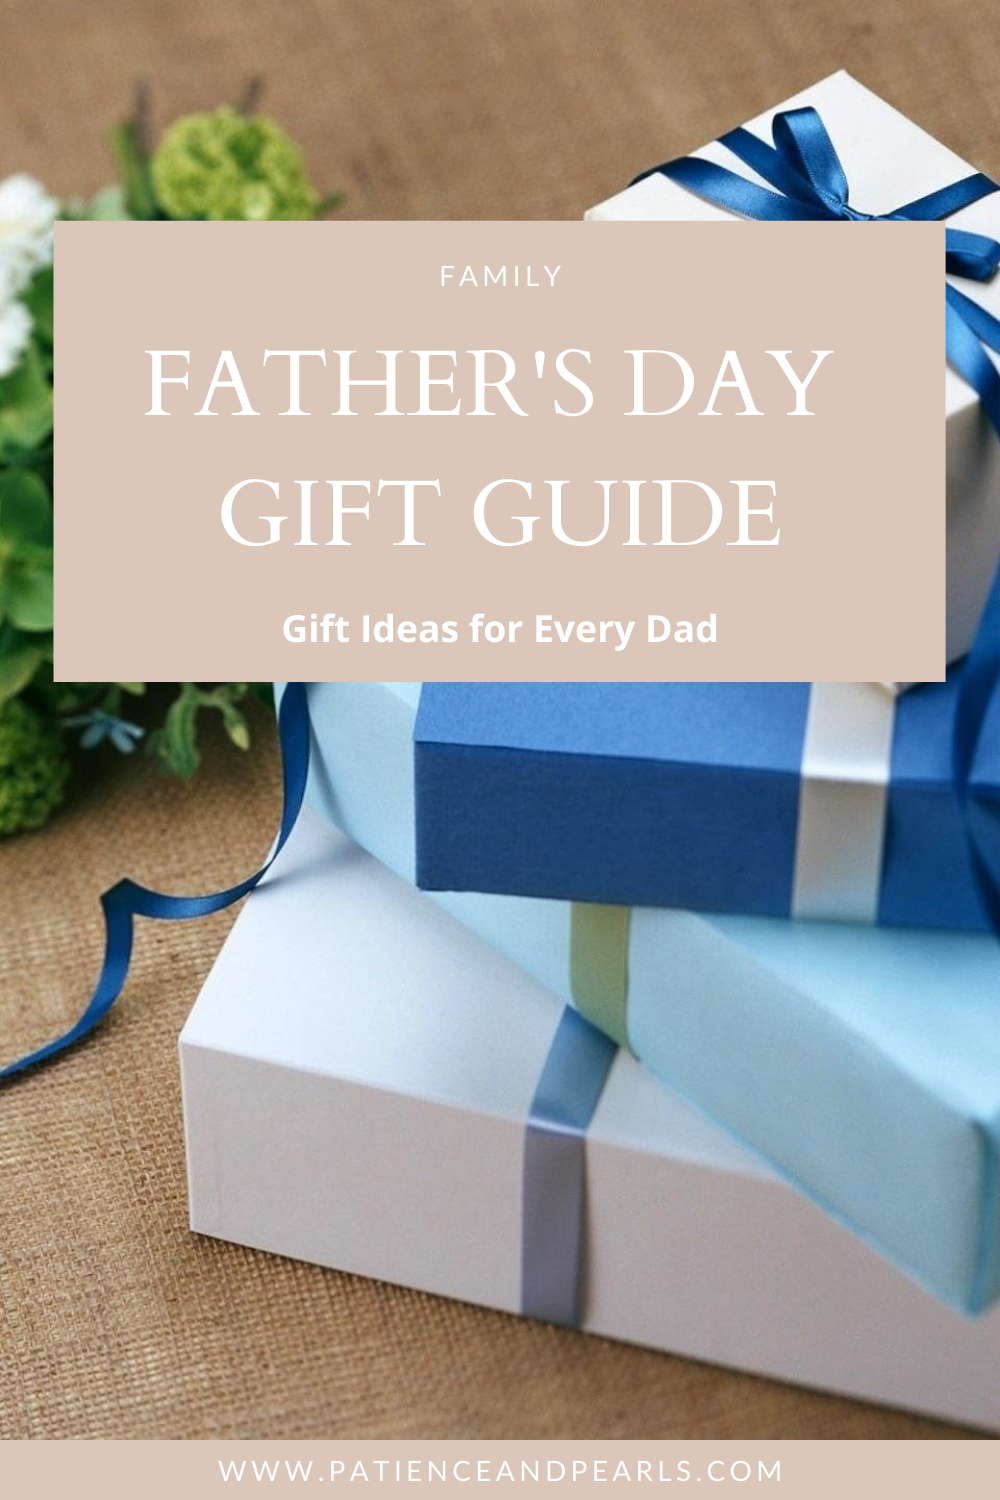 Father's Day Gift Guide - Patience & Pearls - Pinterest